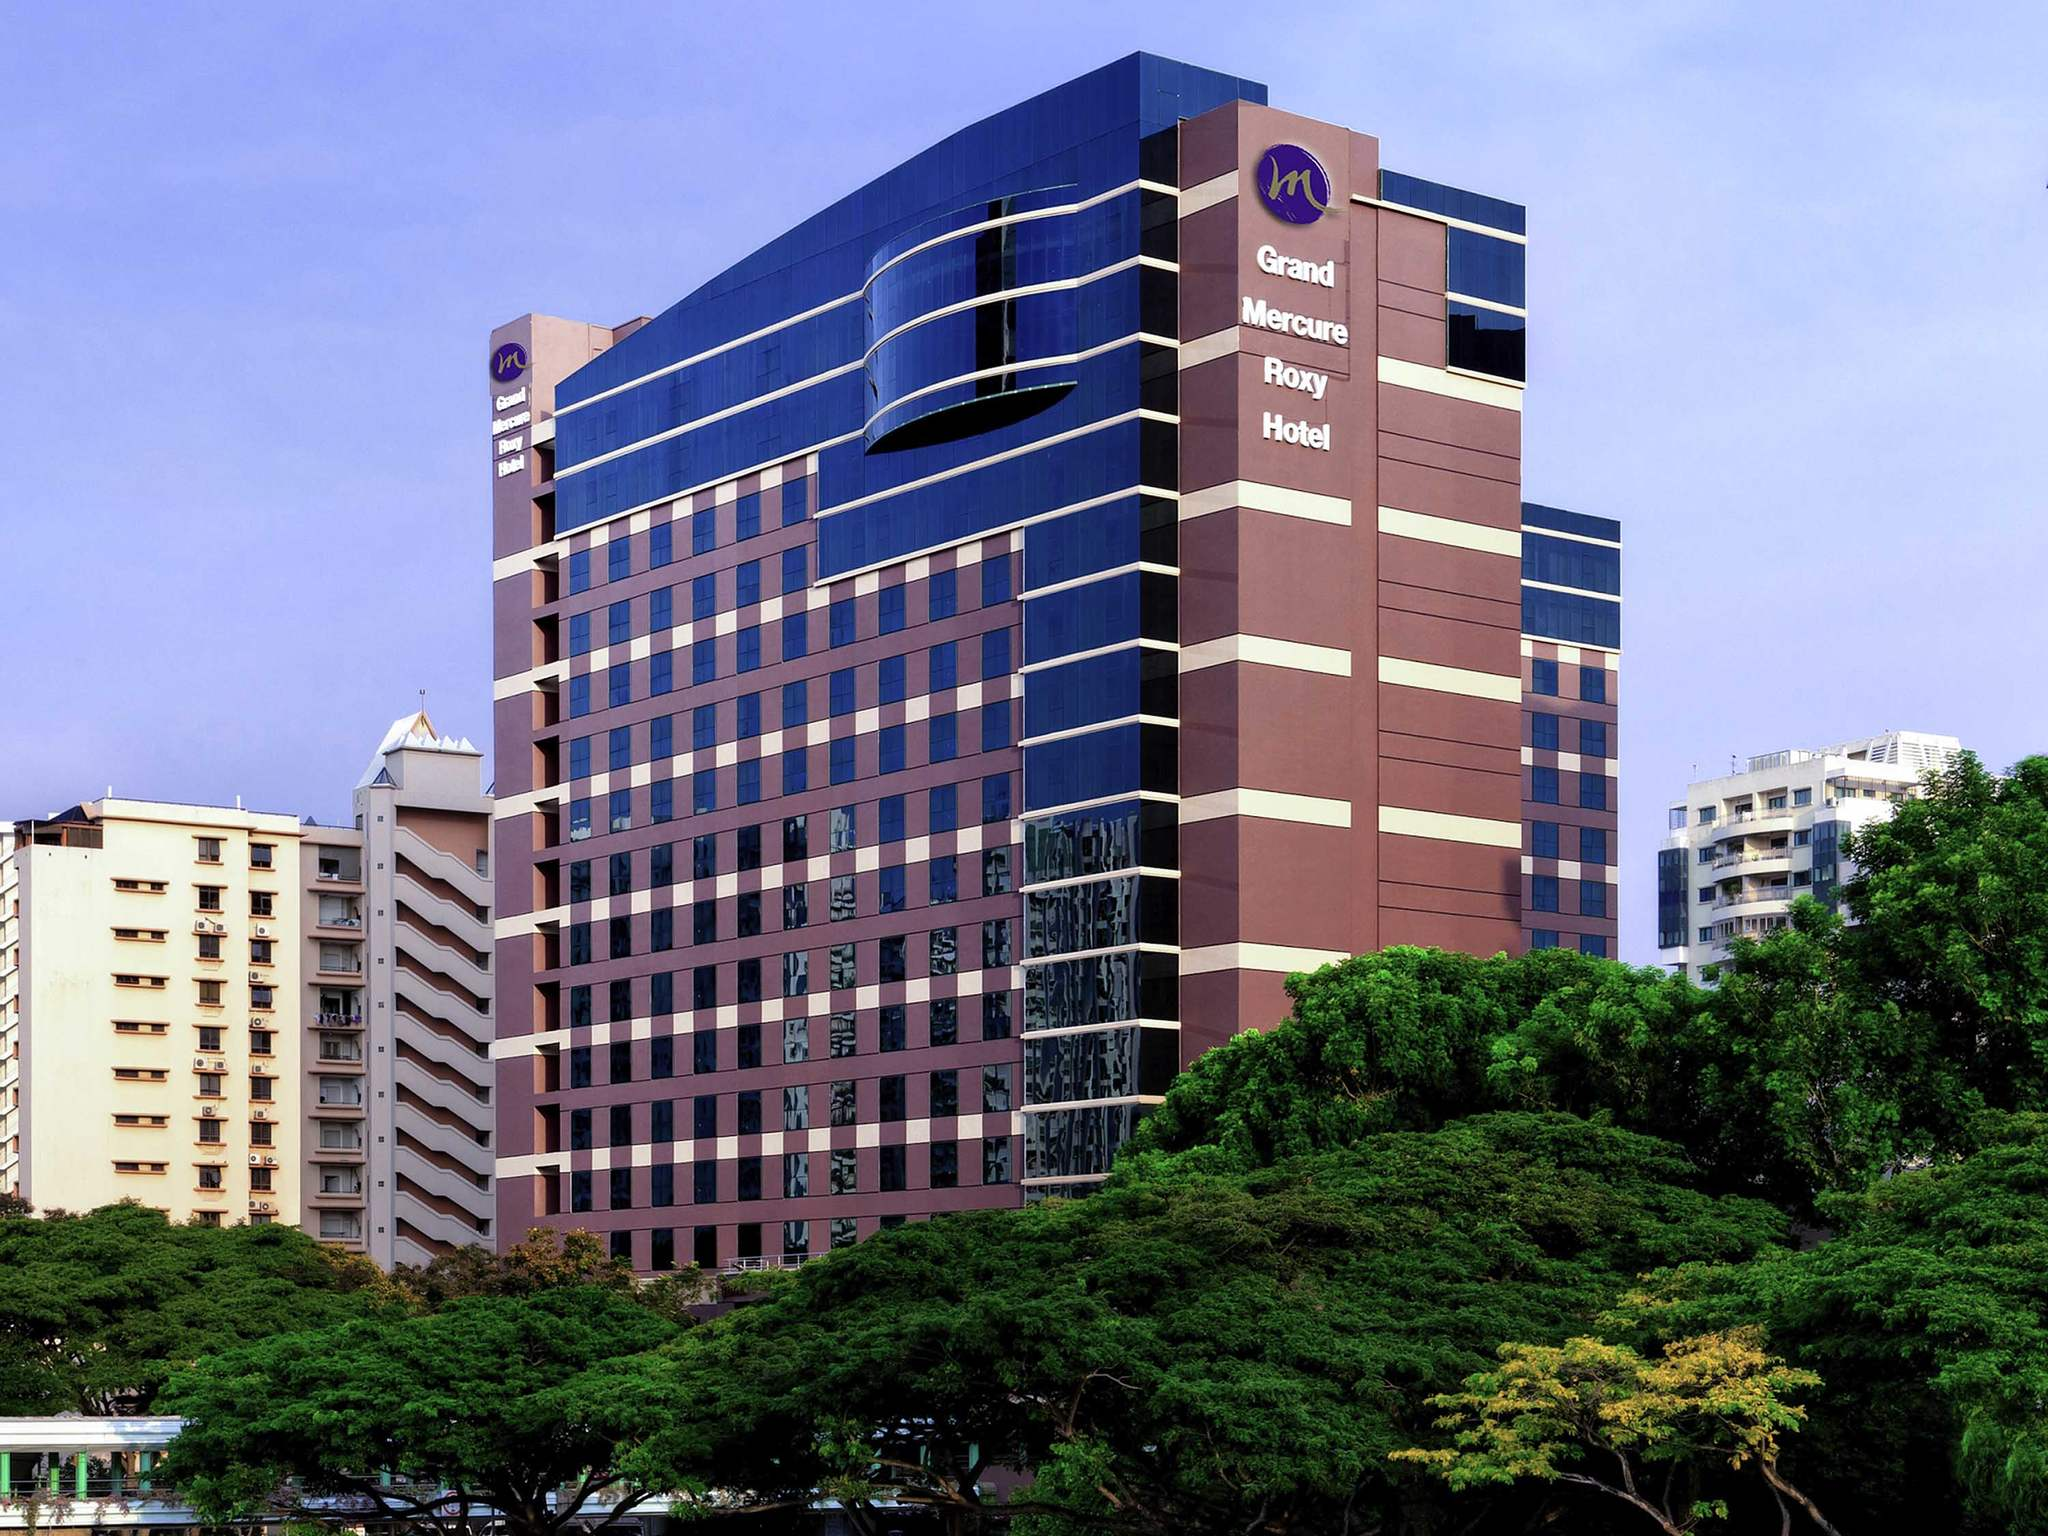 Hotel - Grand Mercure Singapore Roxy